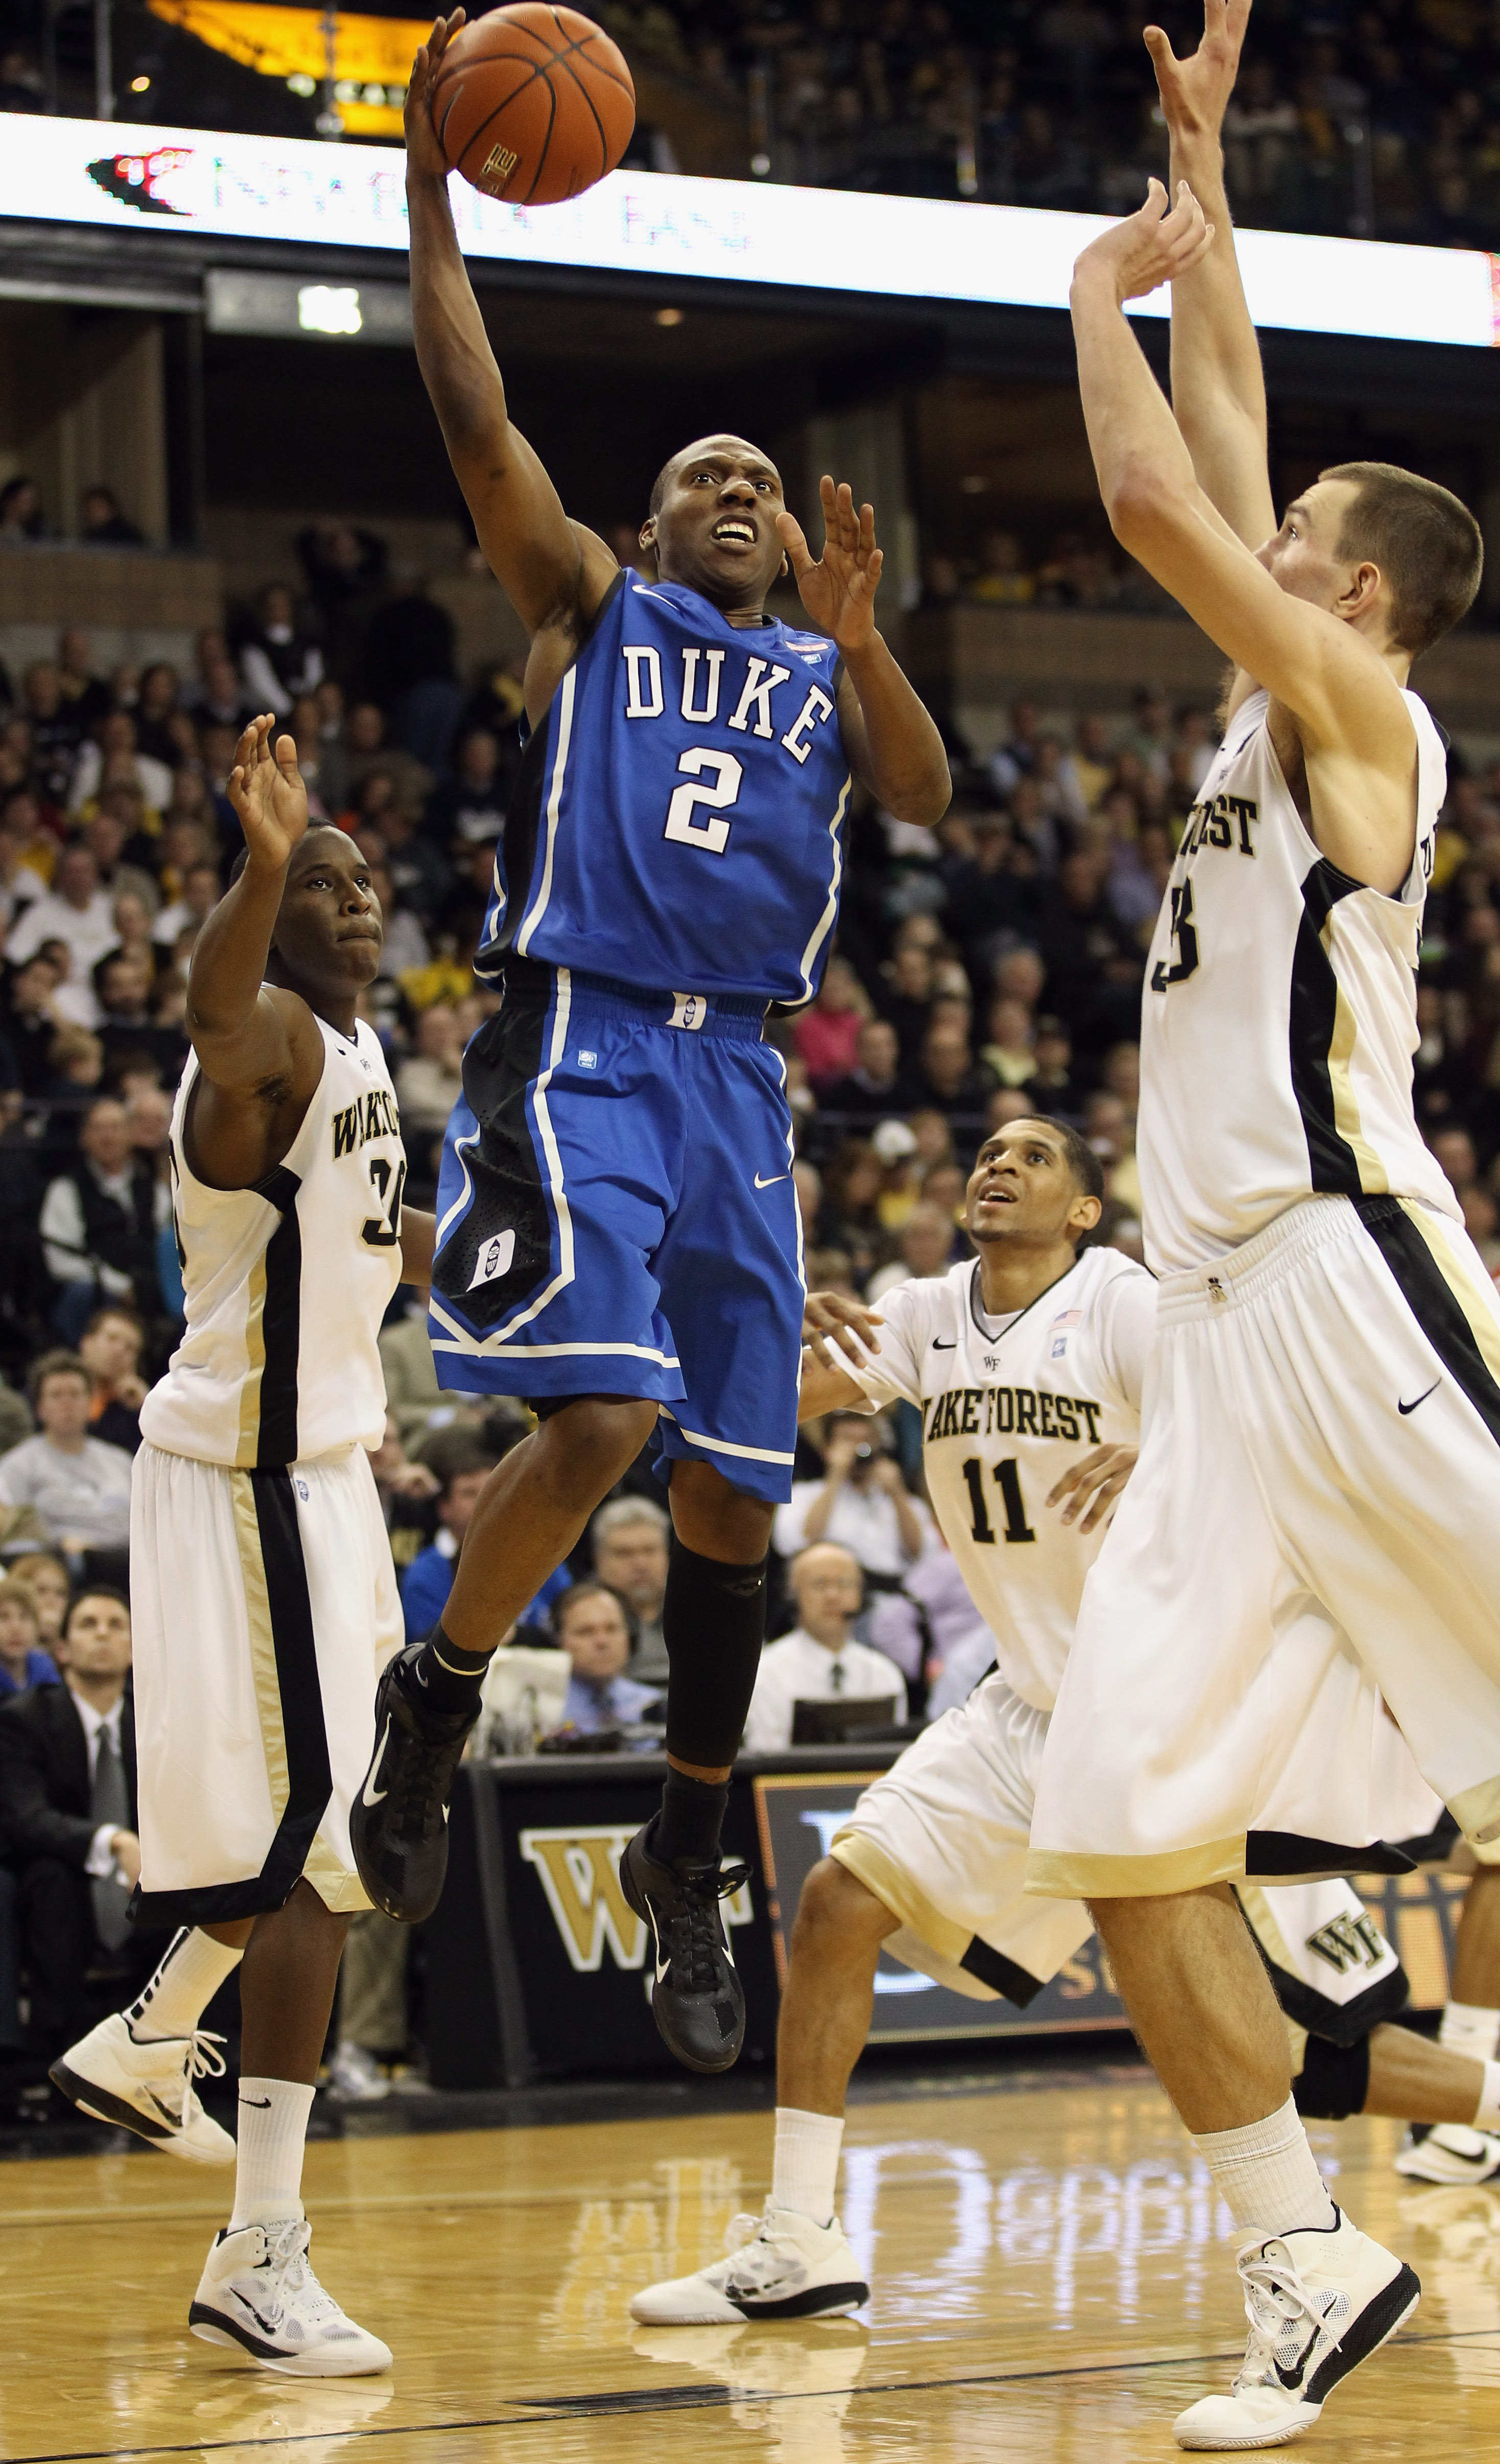 WINSTON SALEM, NC - JANUARY 22:  Nolan Smith #2 of the Duke Blue Devils drives to the basket on the defense of the Wake Forest Demon Deacons during their game at Lawrence Joel Coliseum on January 22, 2011 in Winston Salem, North Carolina.  (Photo by Stree